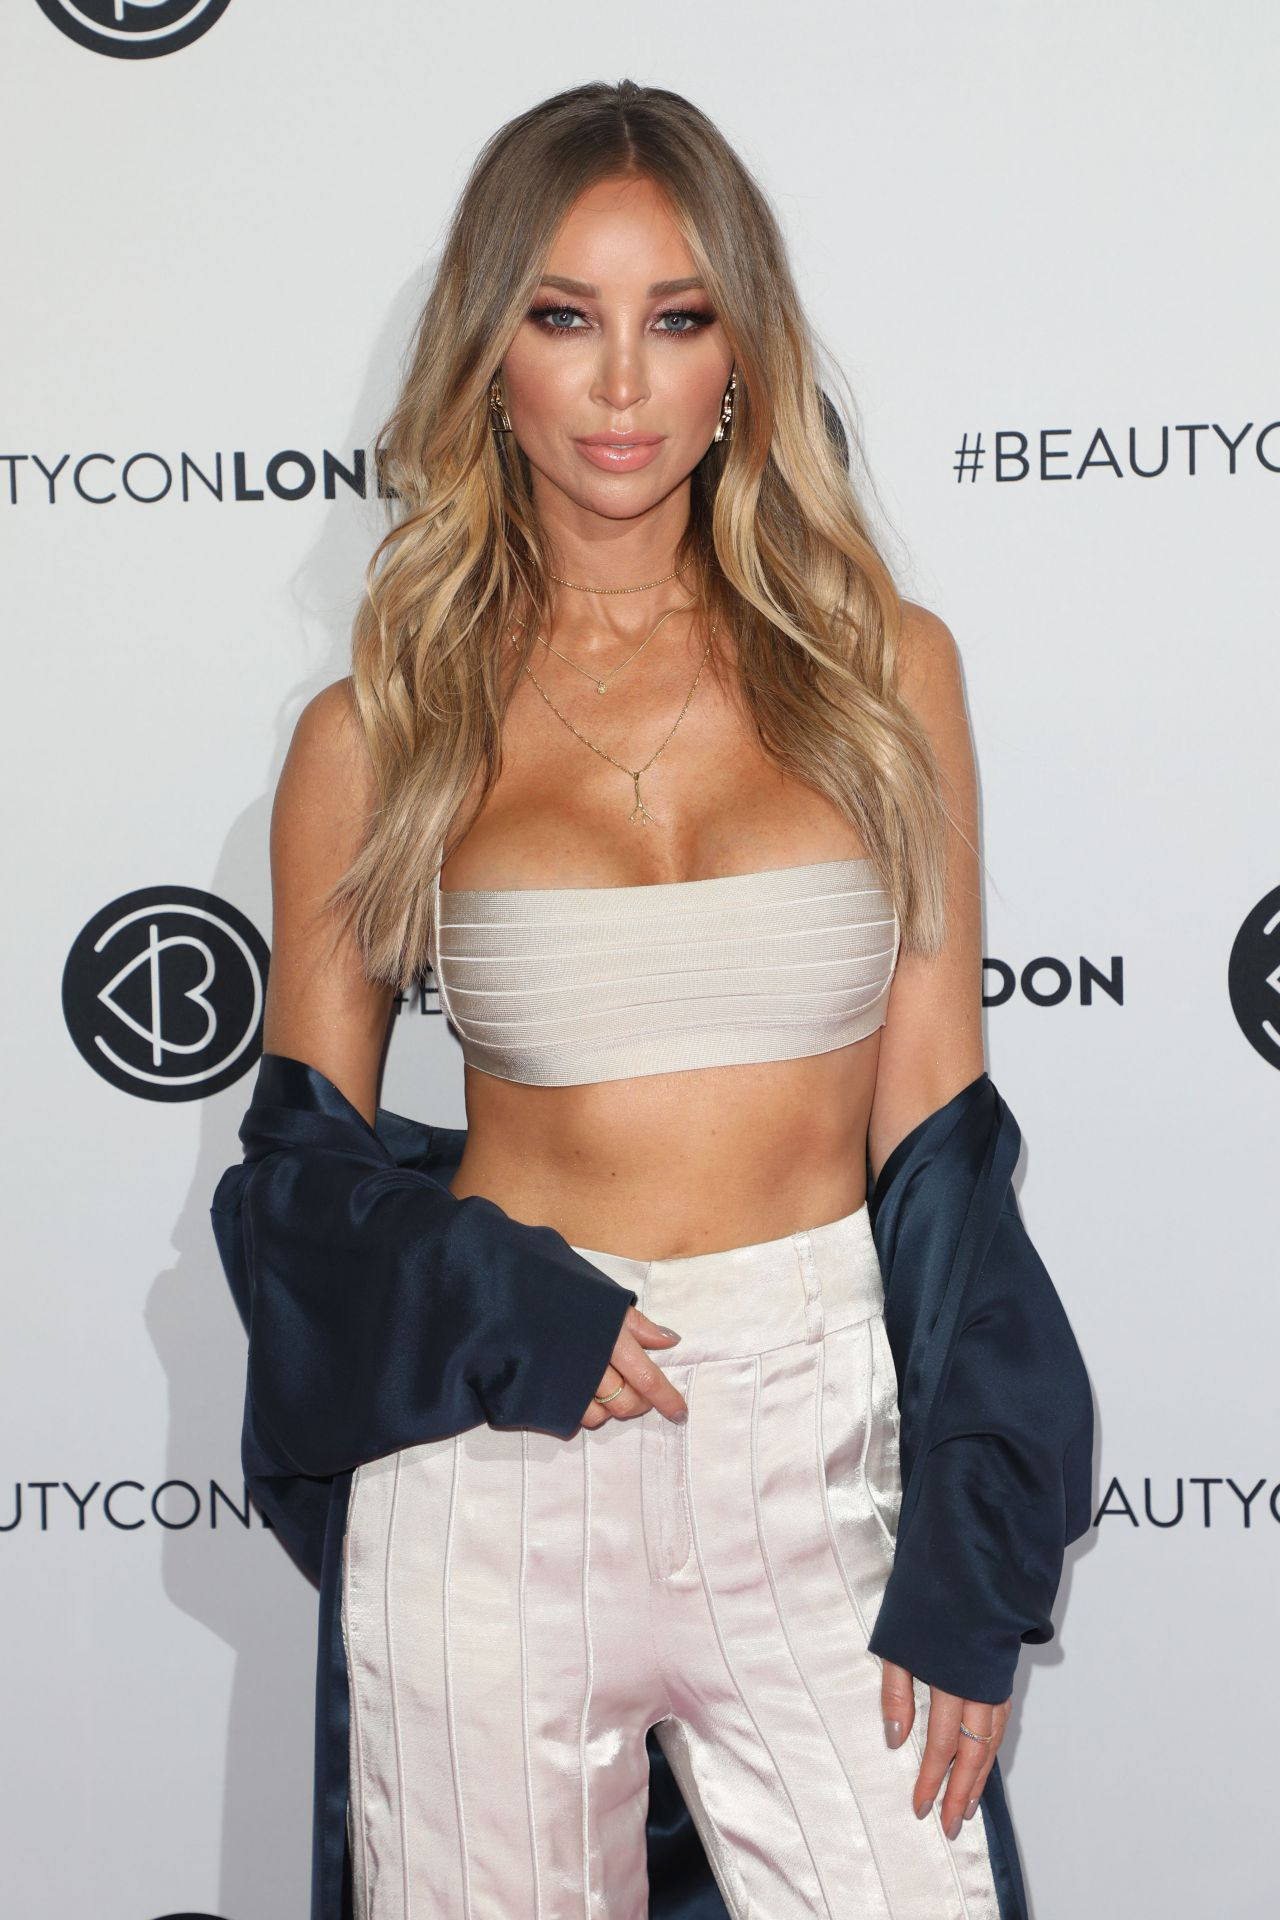 cleavage Pictures Lauren Pope naked photo 2017